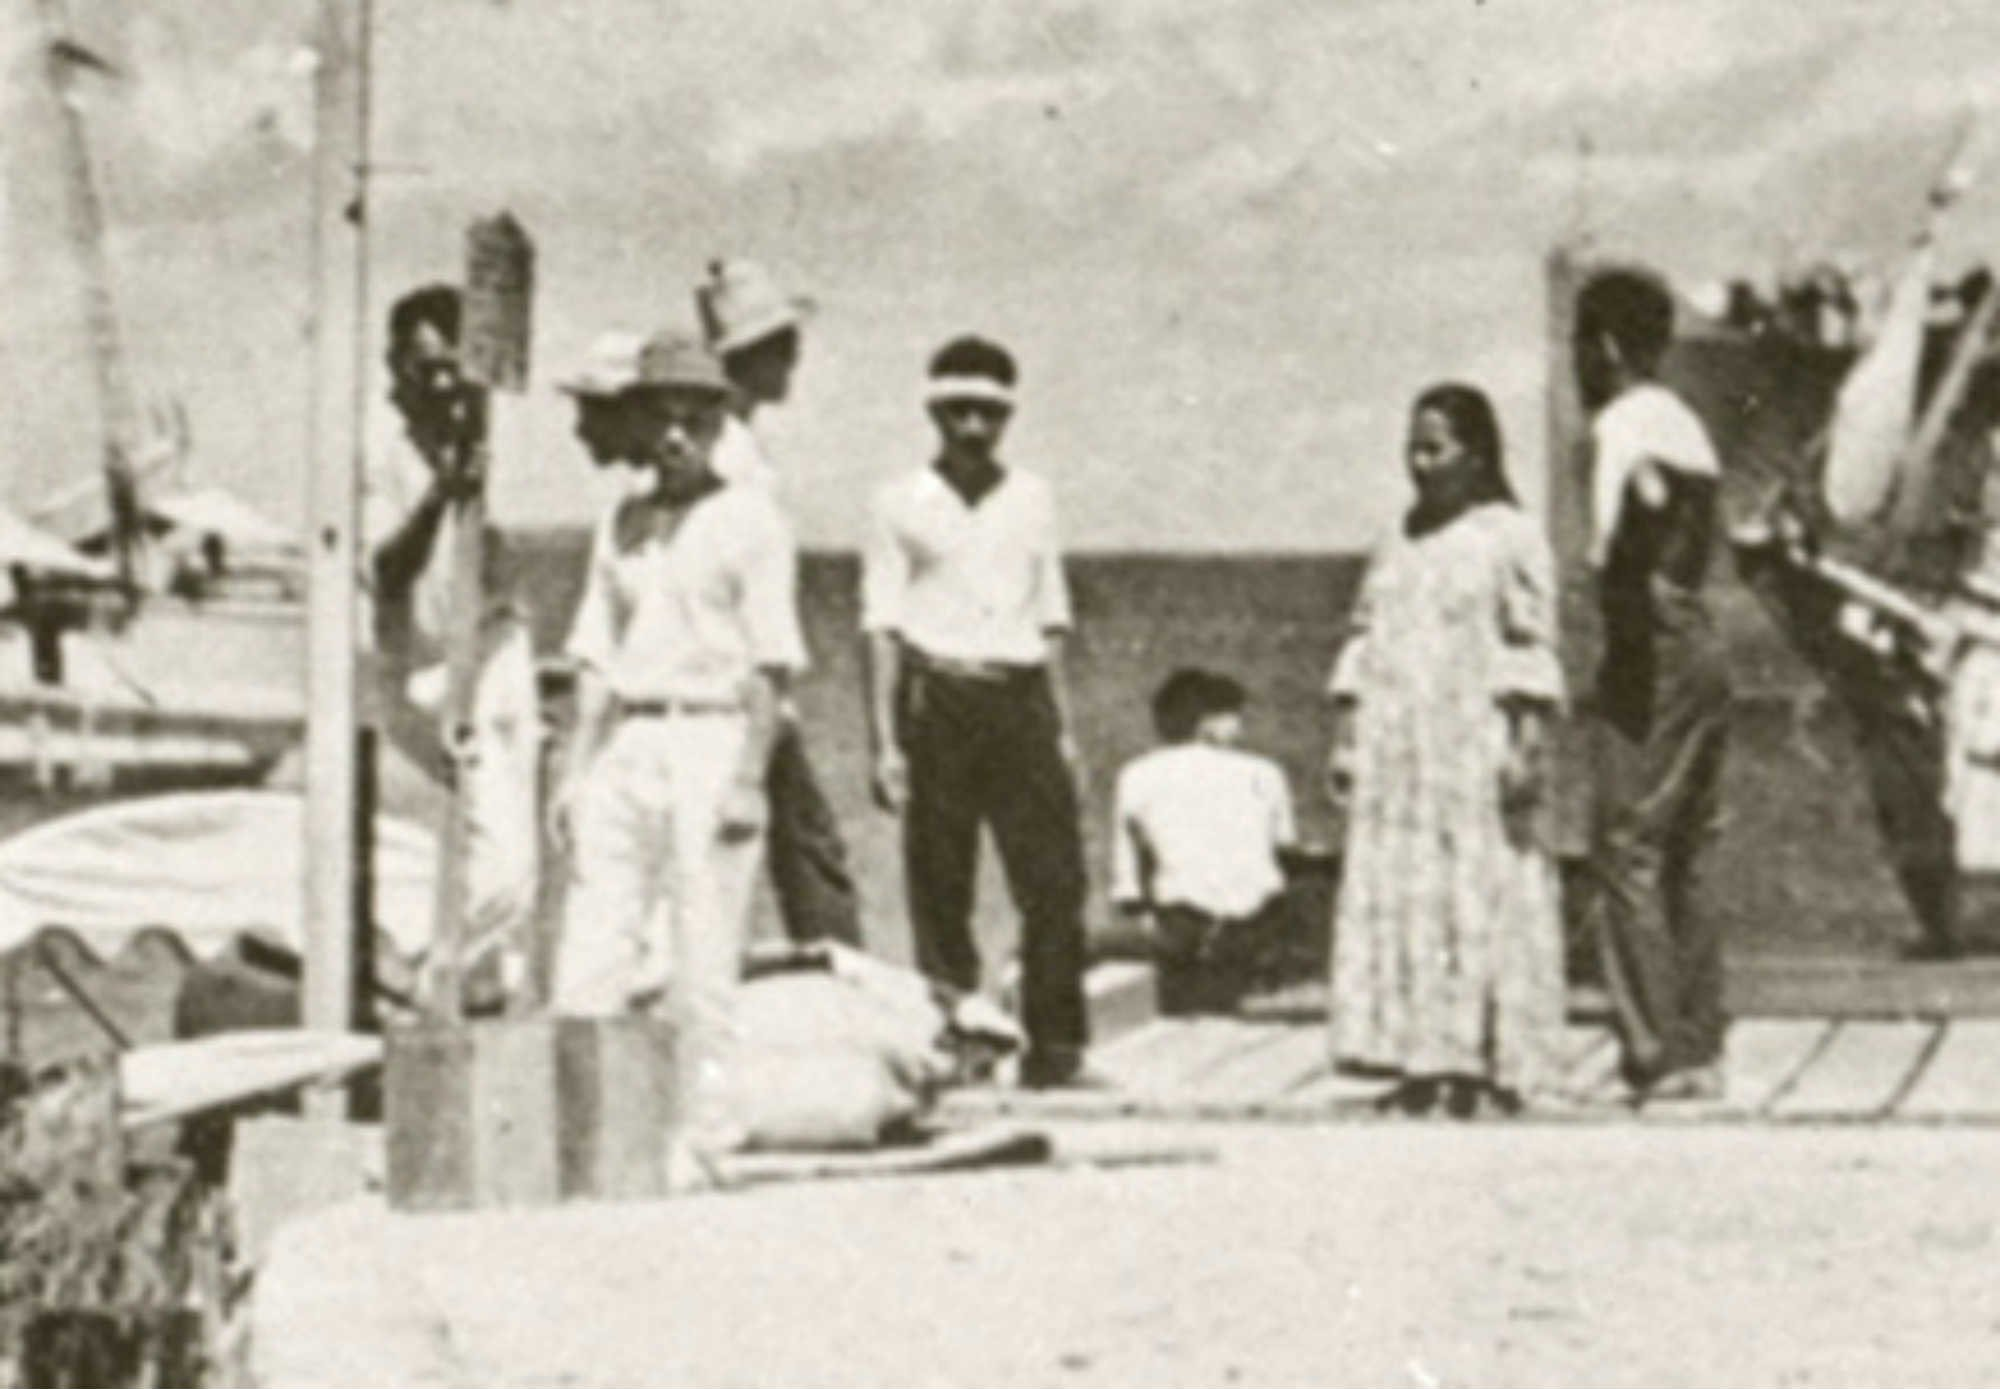 According to the new documentary, the person whose back is to the camera is Amelia Earhart. (Courtesy: National Archives photo)